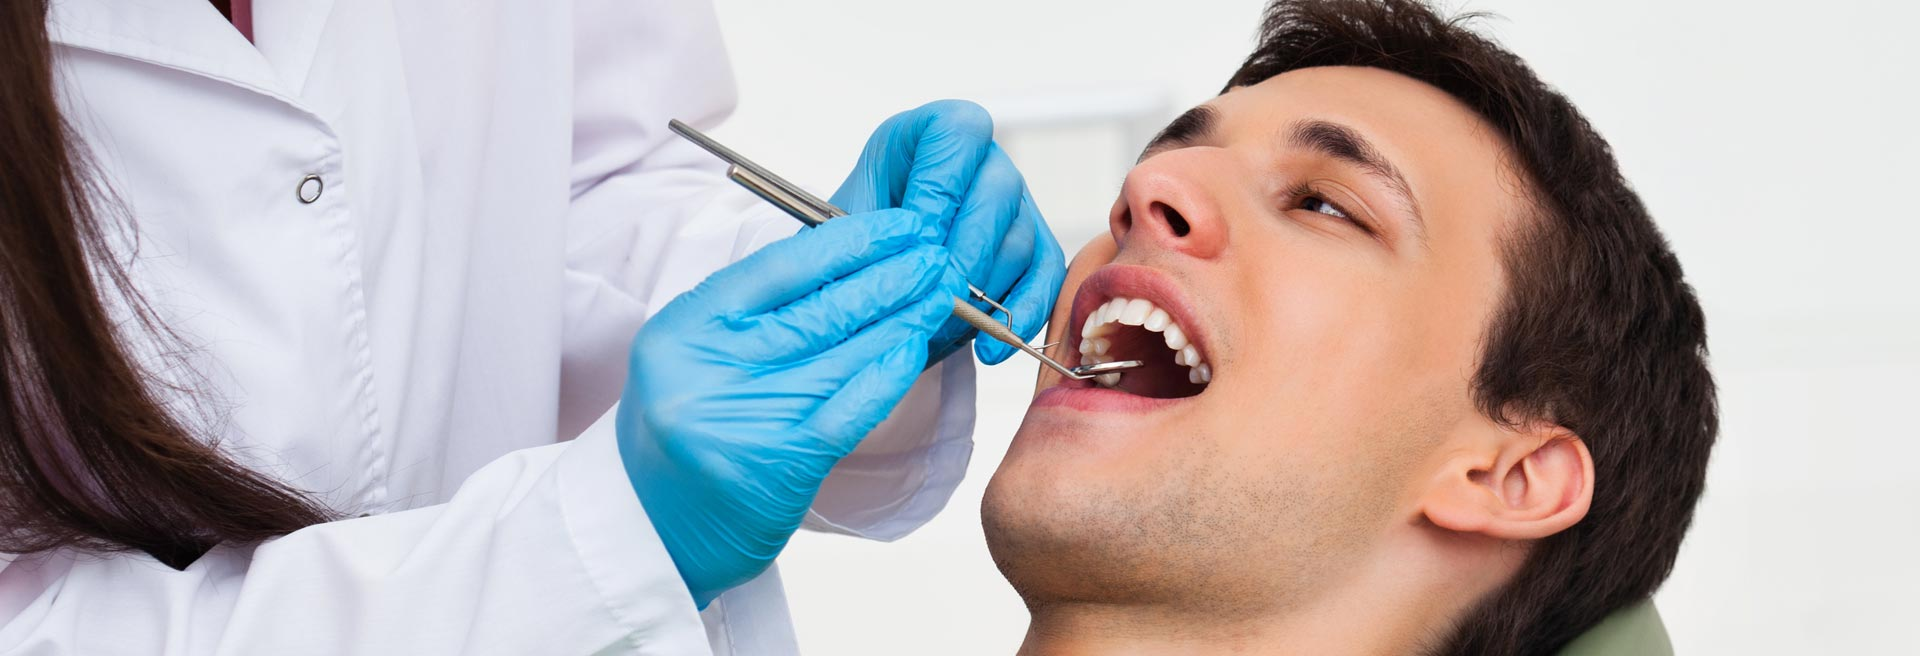 South Calgary Root Canal Therapy | Shawnessy Smiles Dental